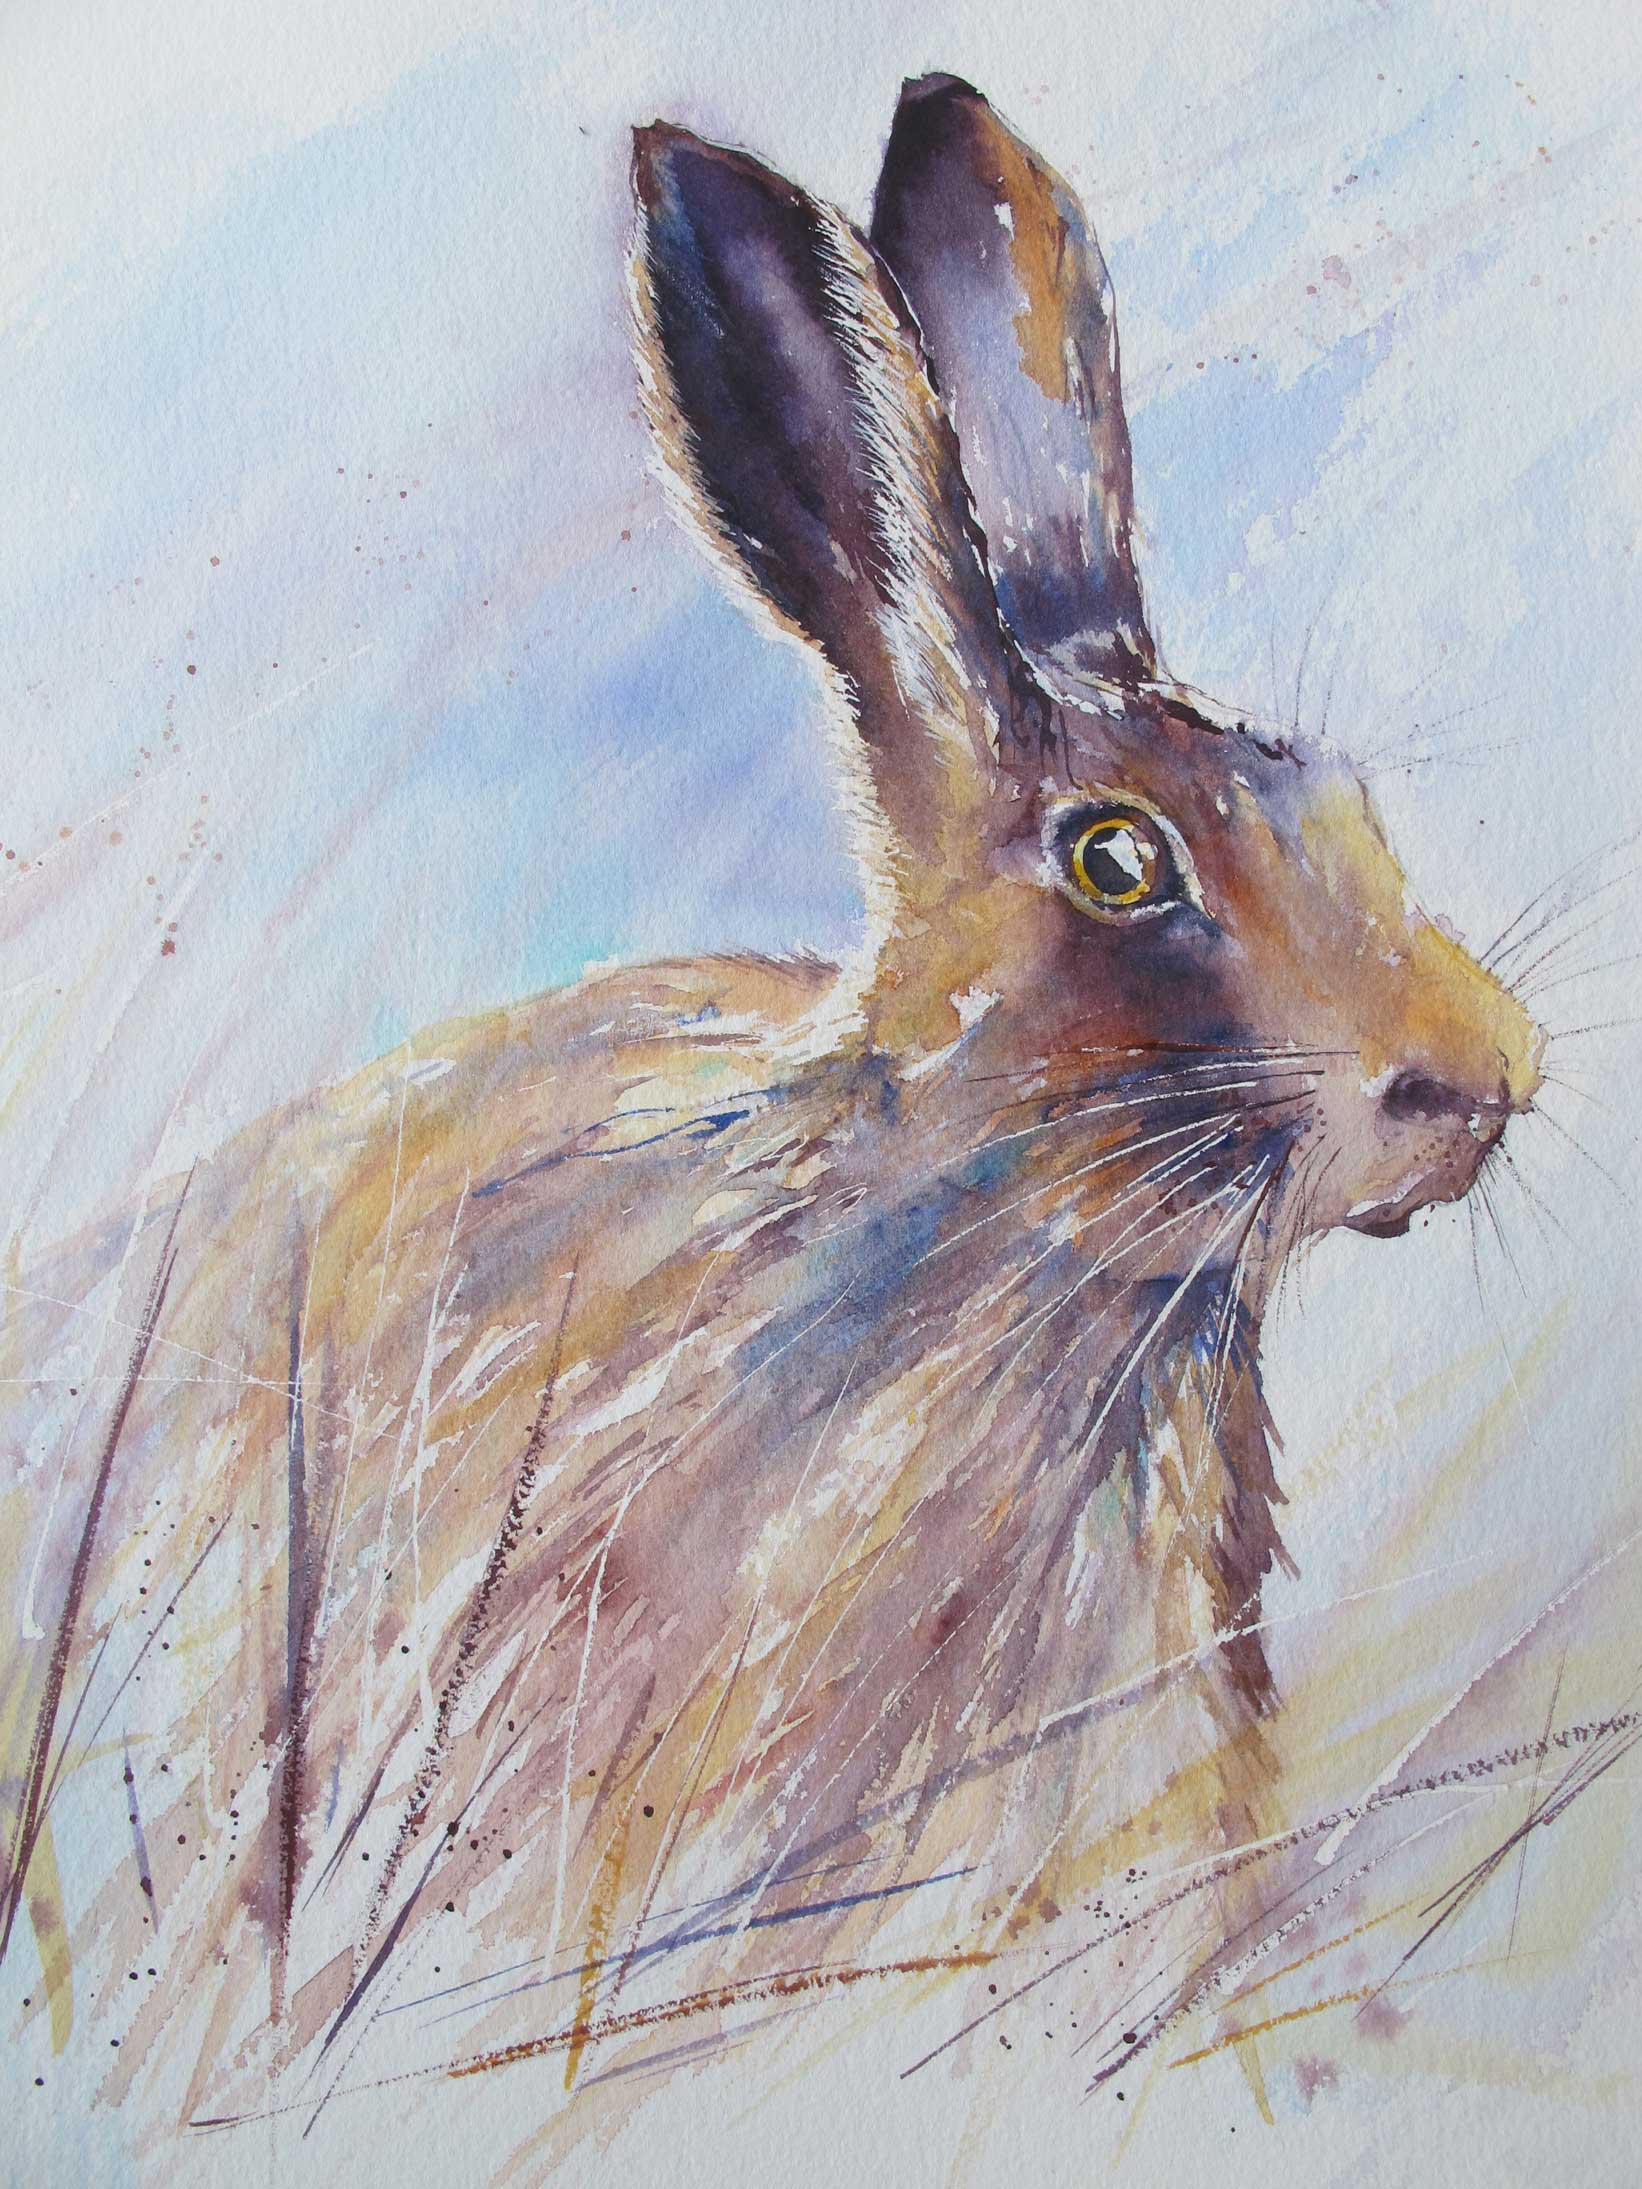 This joint of hares is simply great